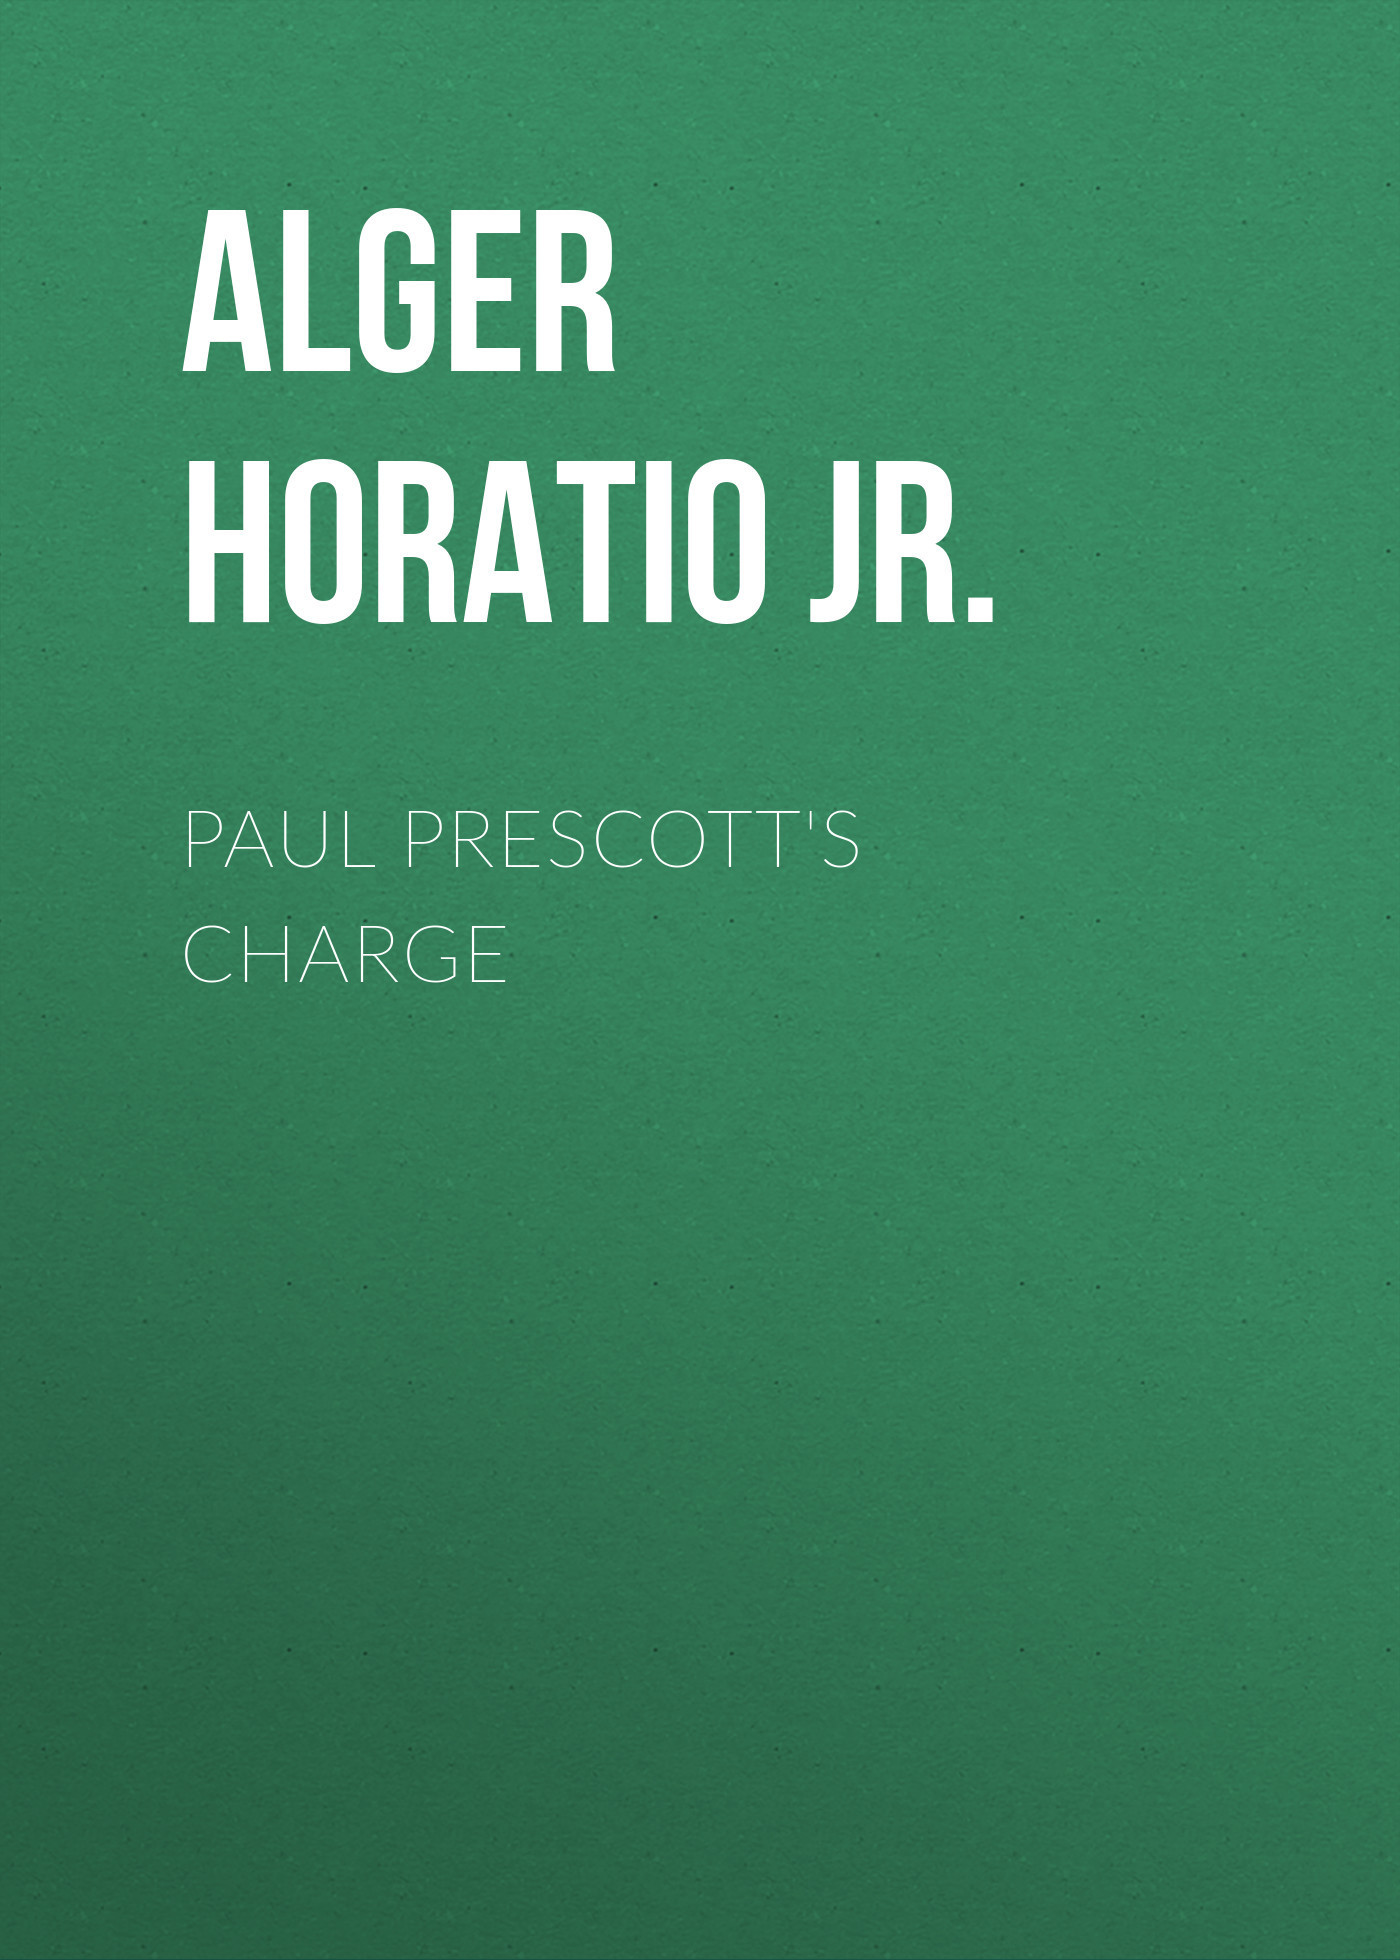 Alger Horatio Jr. Paul Prescott's Charge